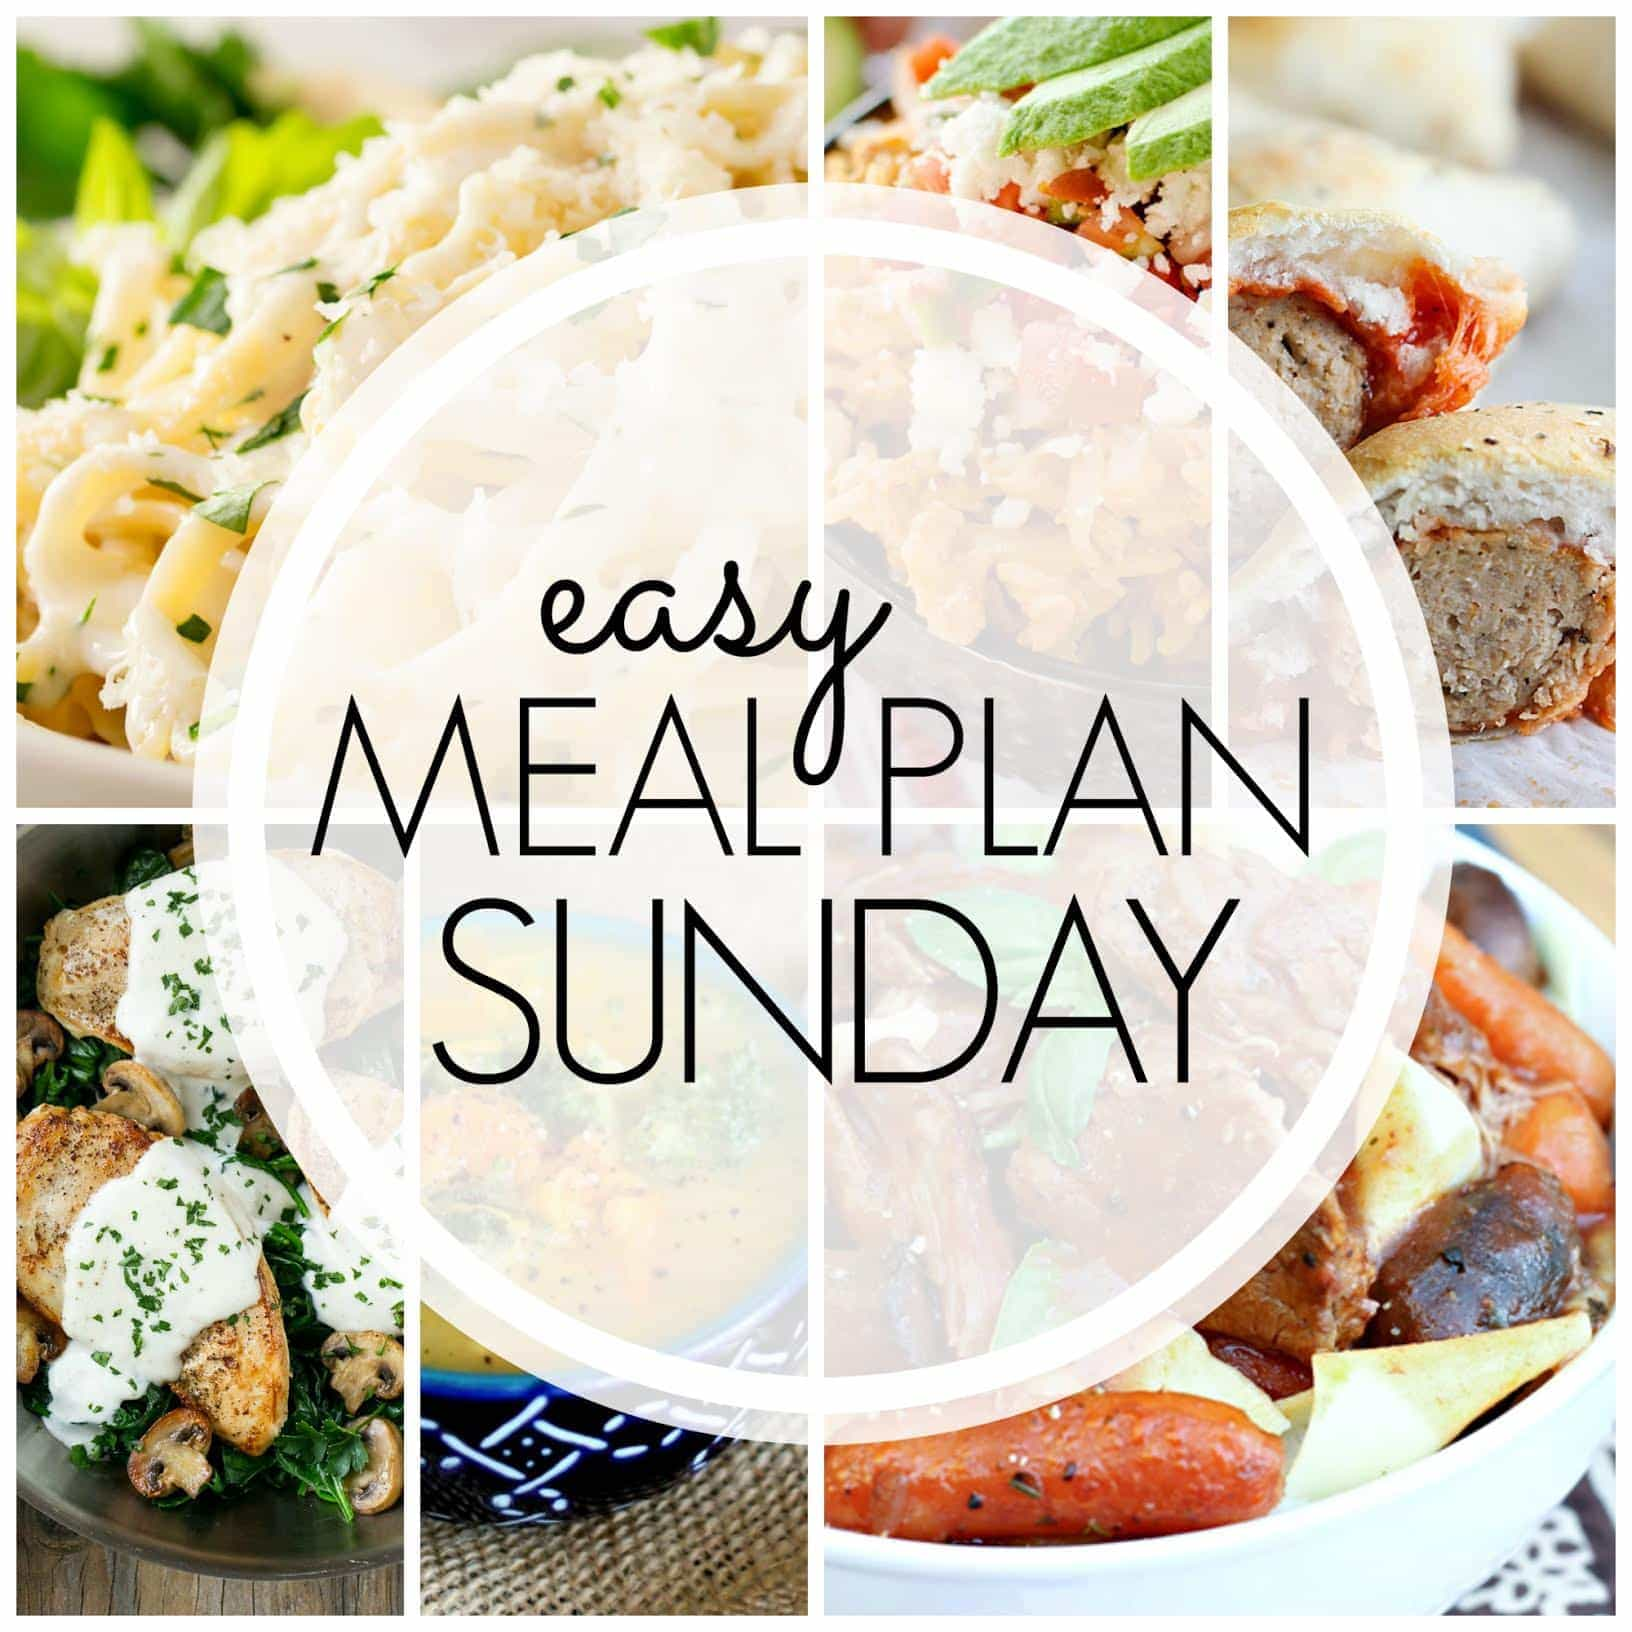 The BEST Easy Meal Plan, loaded with delicious recipes your family will love. There's something for everyone....including a new healthier option!